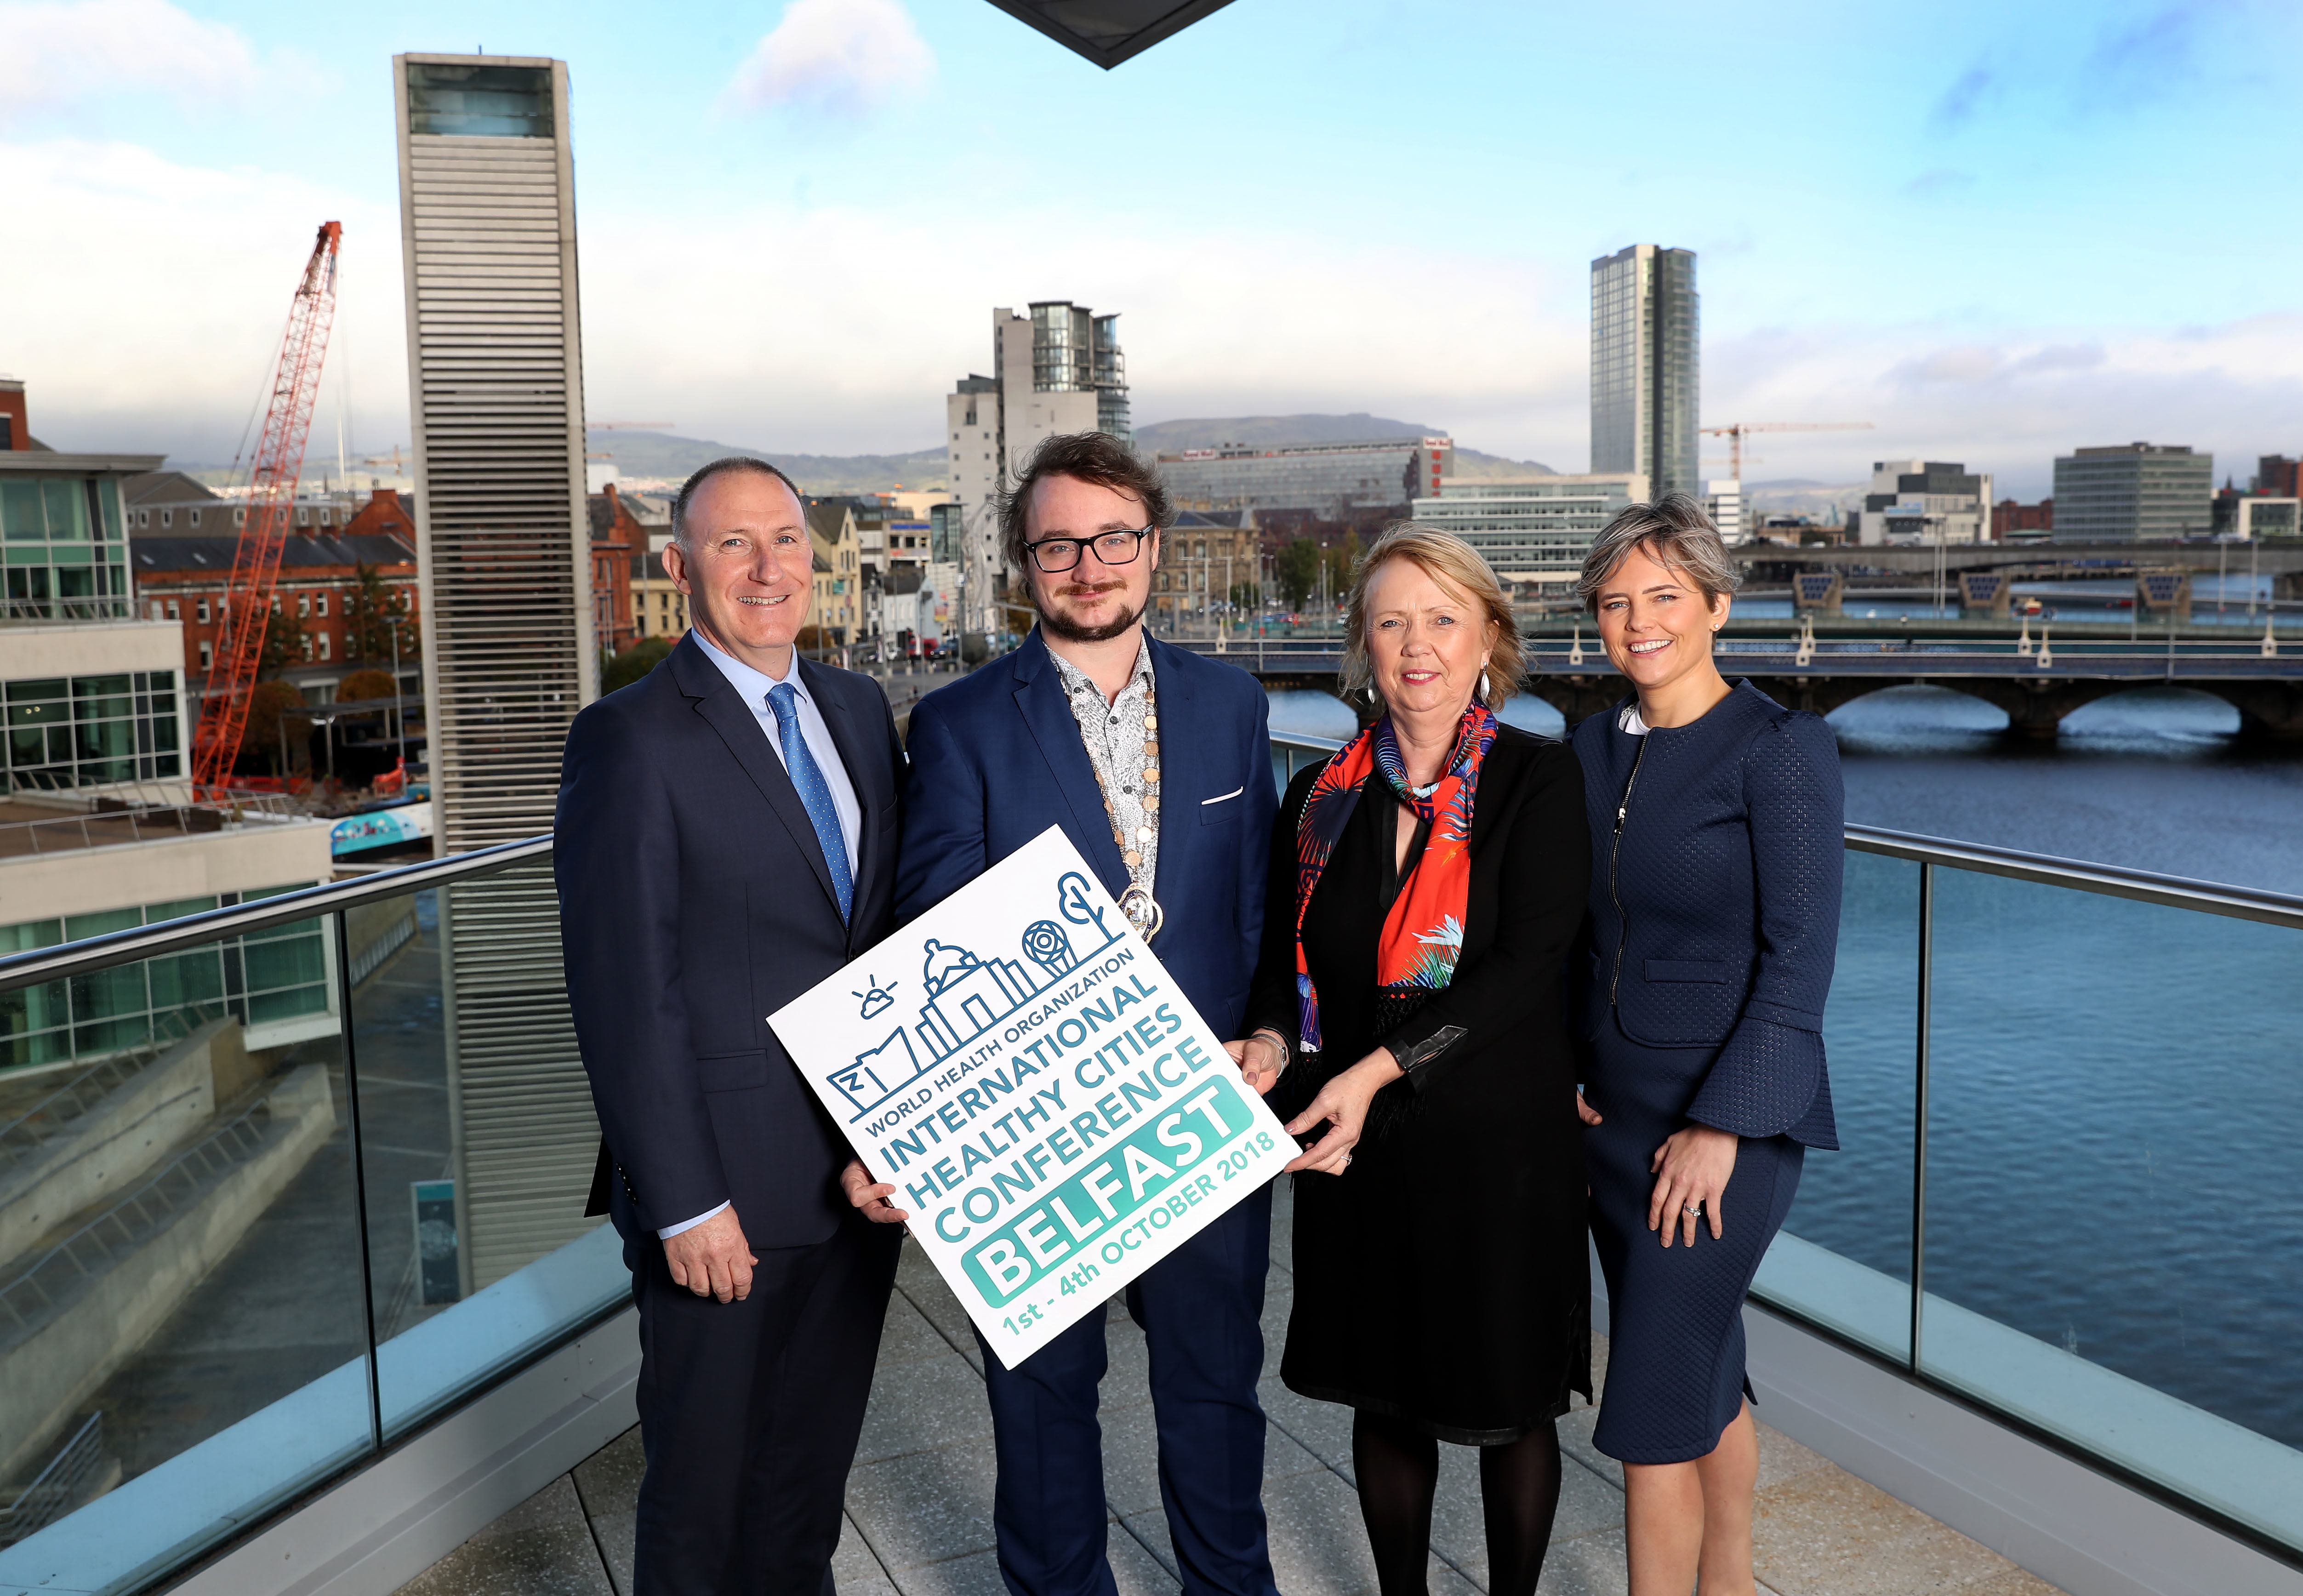 Representatives from Belfast welcome the World Healthy Cities Conference to the city